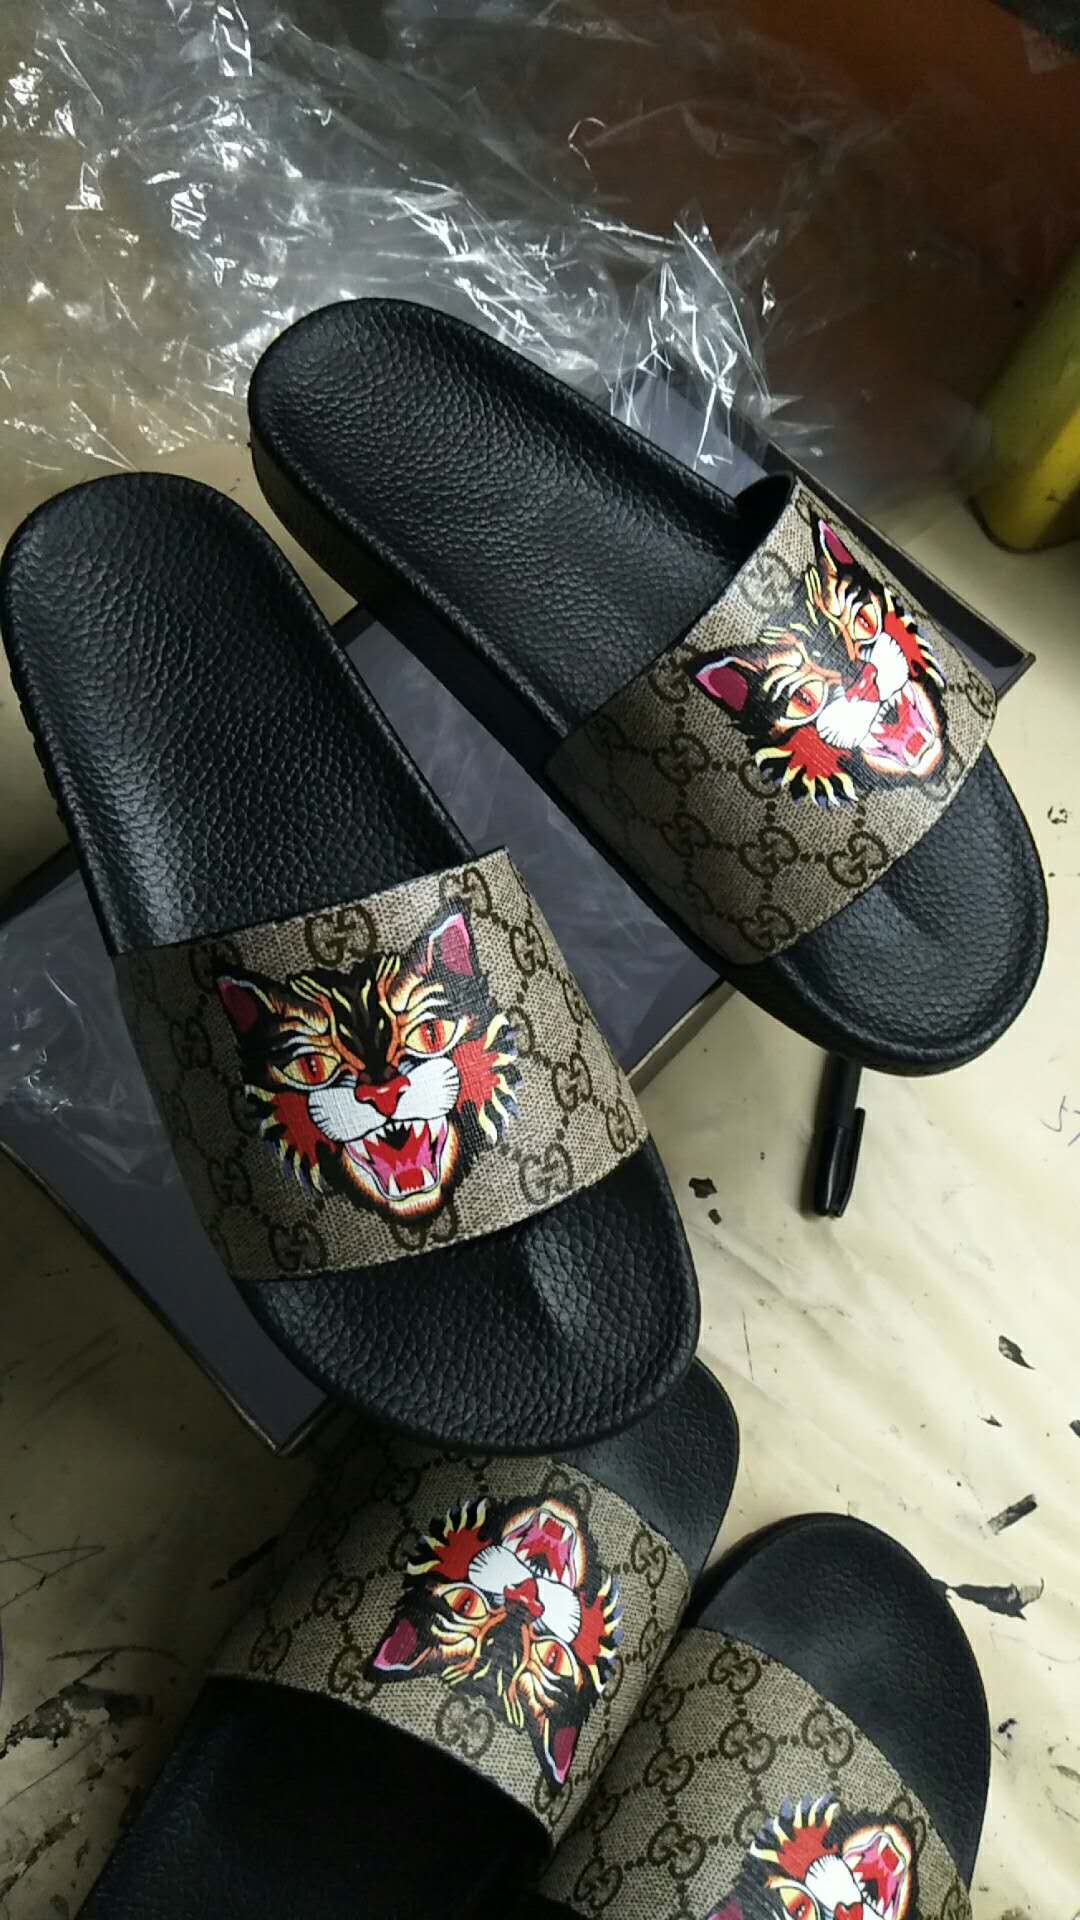 Gucci GG Supreme Angry Cat Slide Sandals Women shoes G5462